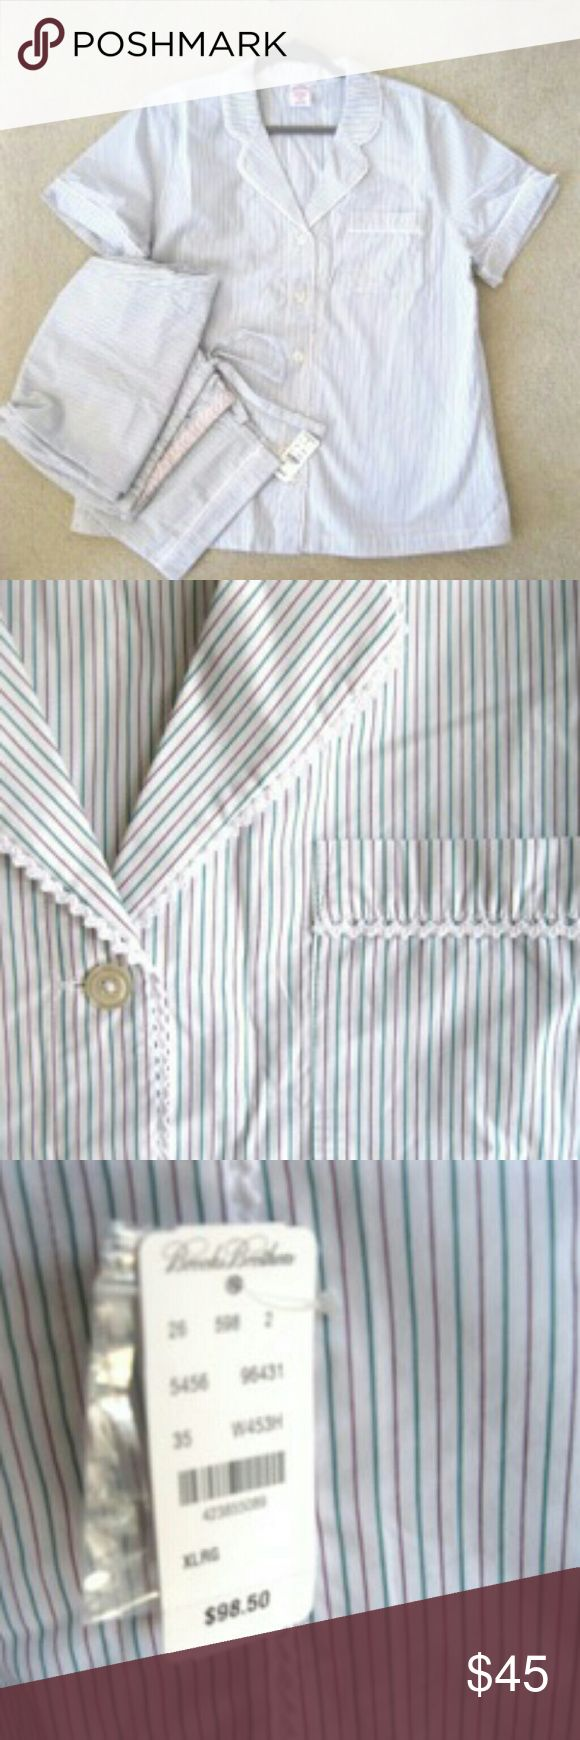 NWT women's Brooks Brothers Cotton Stripe pj set. NWT women's Brooks Brothers Cotton Stripe pajama set. Short sleeved top and pajama style pants in comfortable soft cotton. Size XL measures 46? across bust. was $98.50 tags attached. Brooks Brothers Intimates & Sleepwear Pajamas